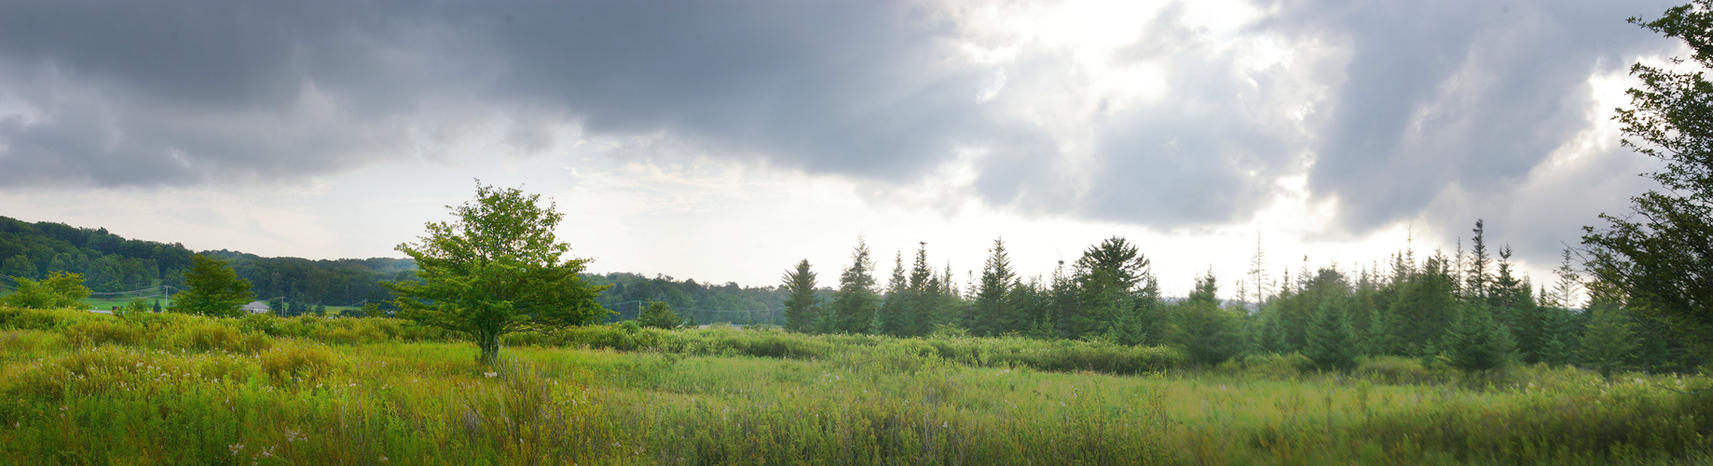 West Virginia Panorama 4 by MaggieMoonPhotogrphy